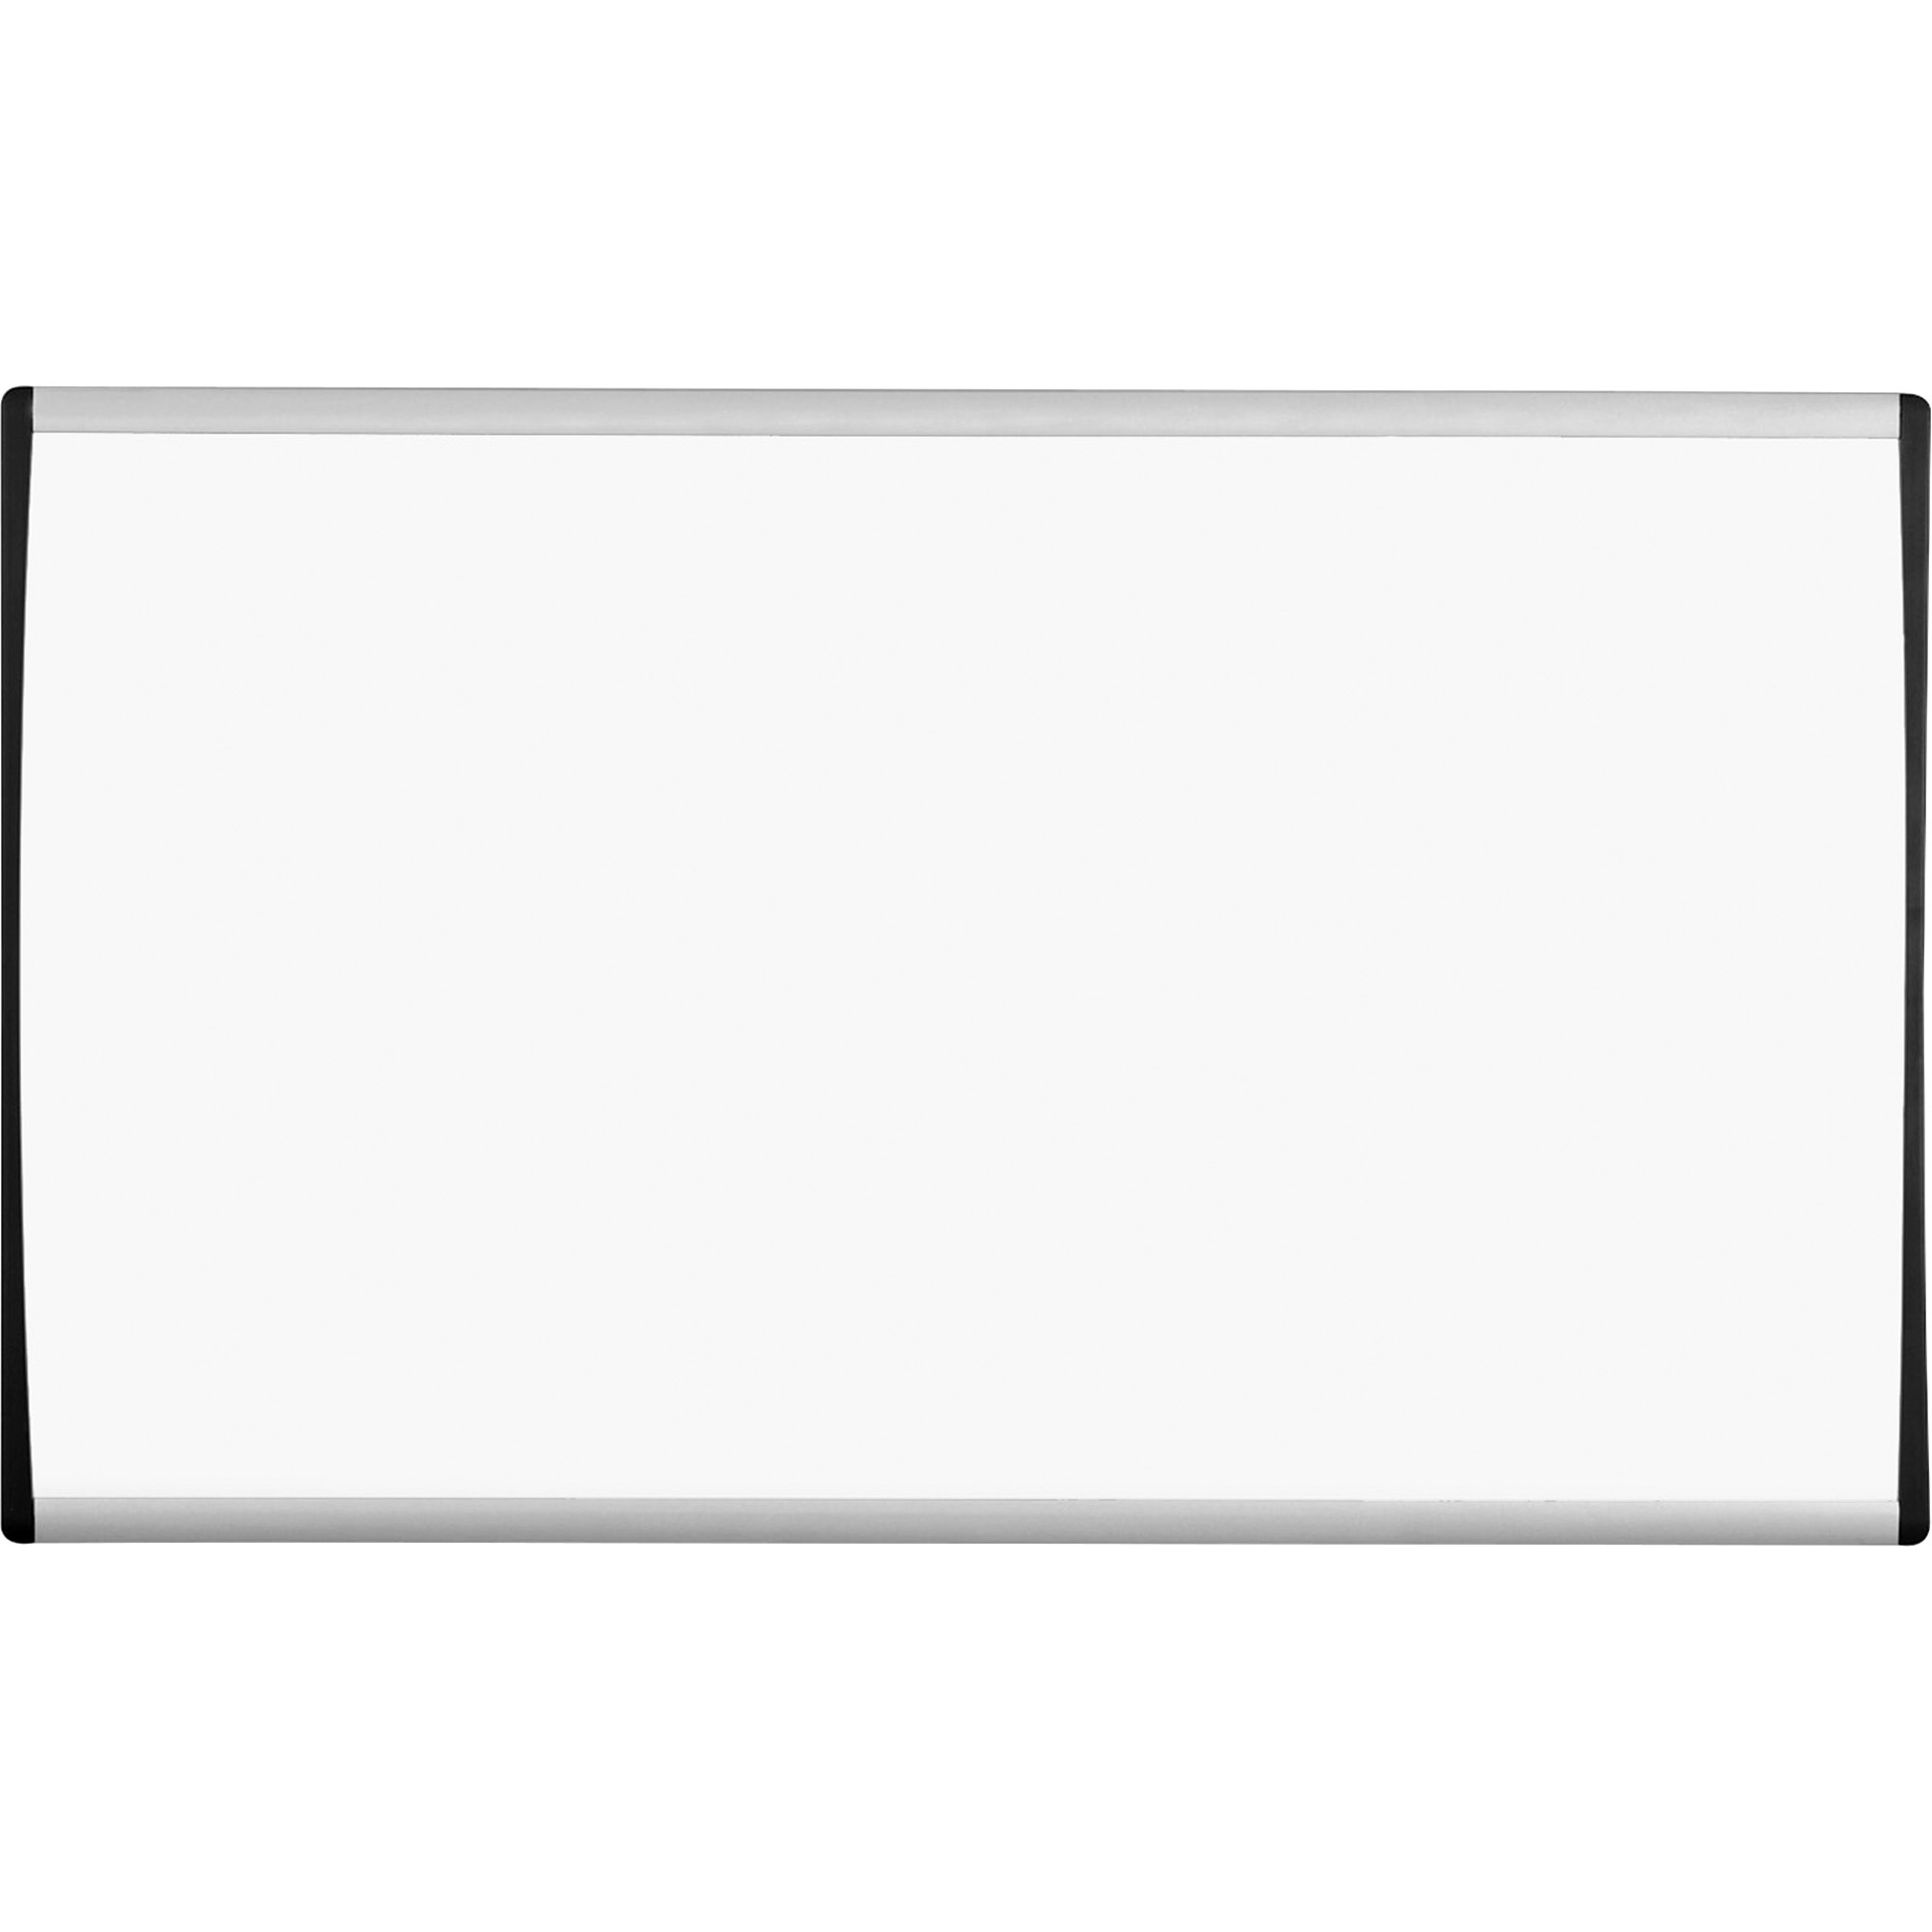 Acco Brands Corporation Quartet® Arc Cubicle Whiteboard - 30 (2.5 Ft) Width X 18 (1.5 Ft) Height - White Painted Steel Surface - Silver Aluminum Frame - Horizontal - 1 / Each